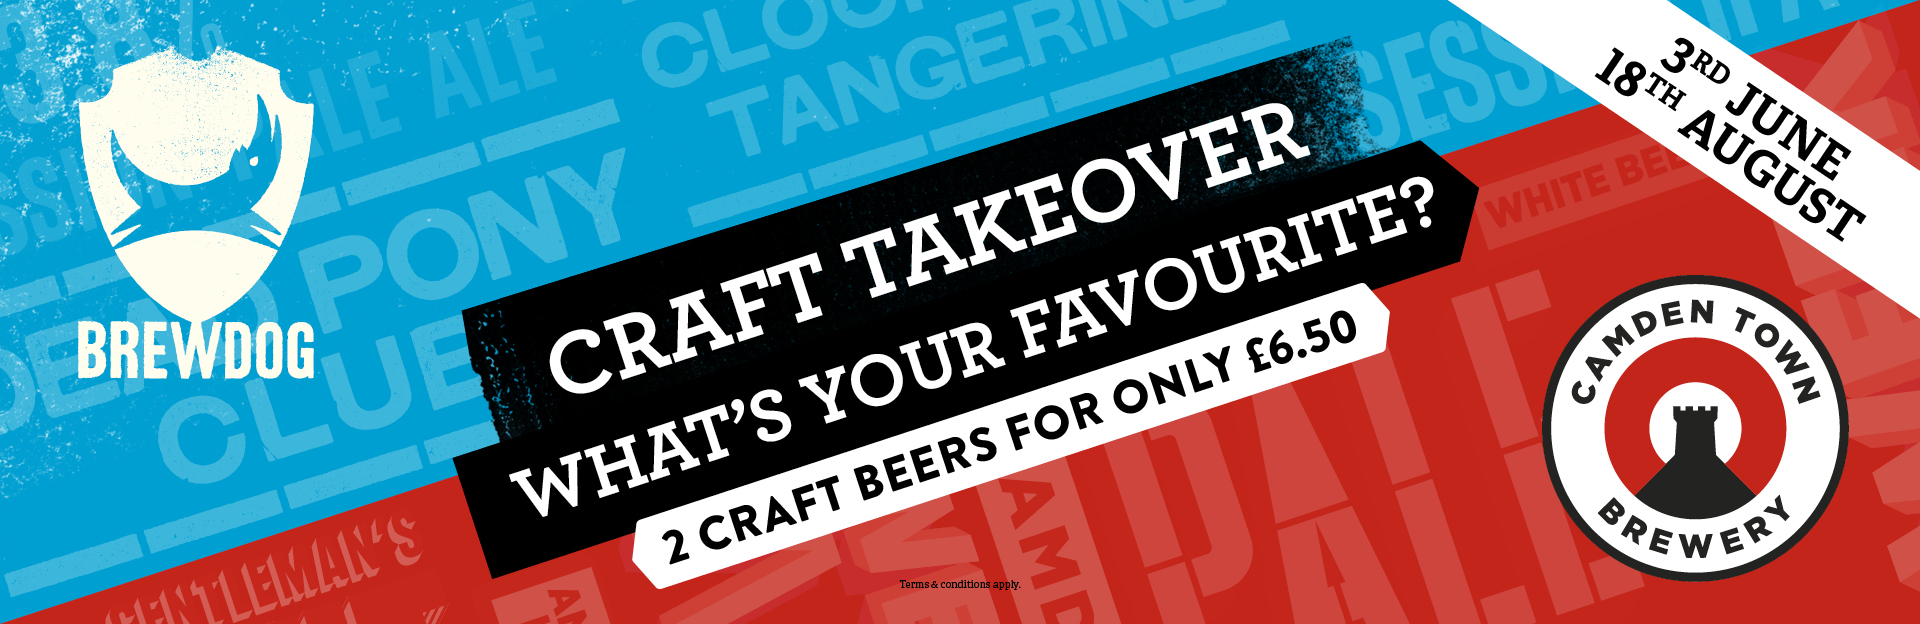 Craft Takeover at Duke of York